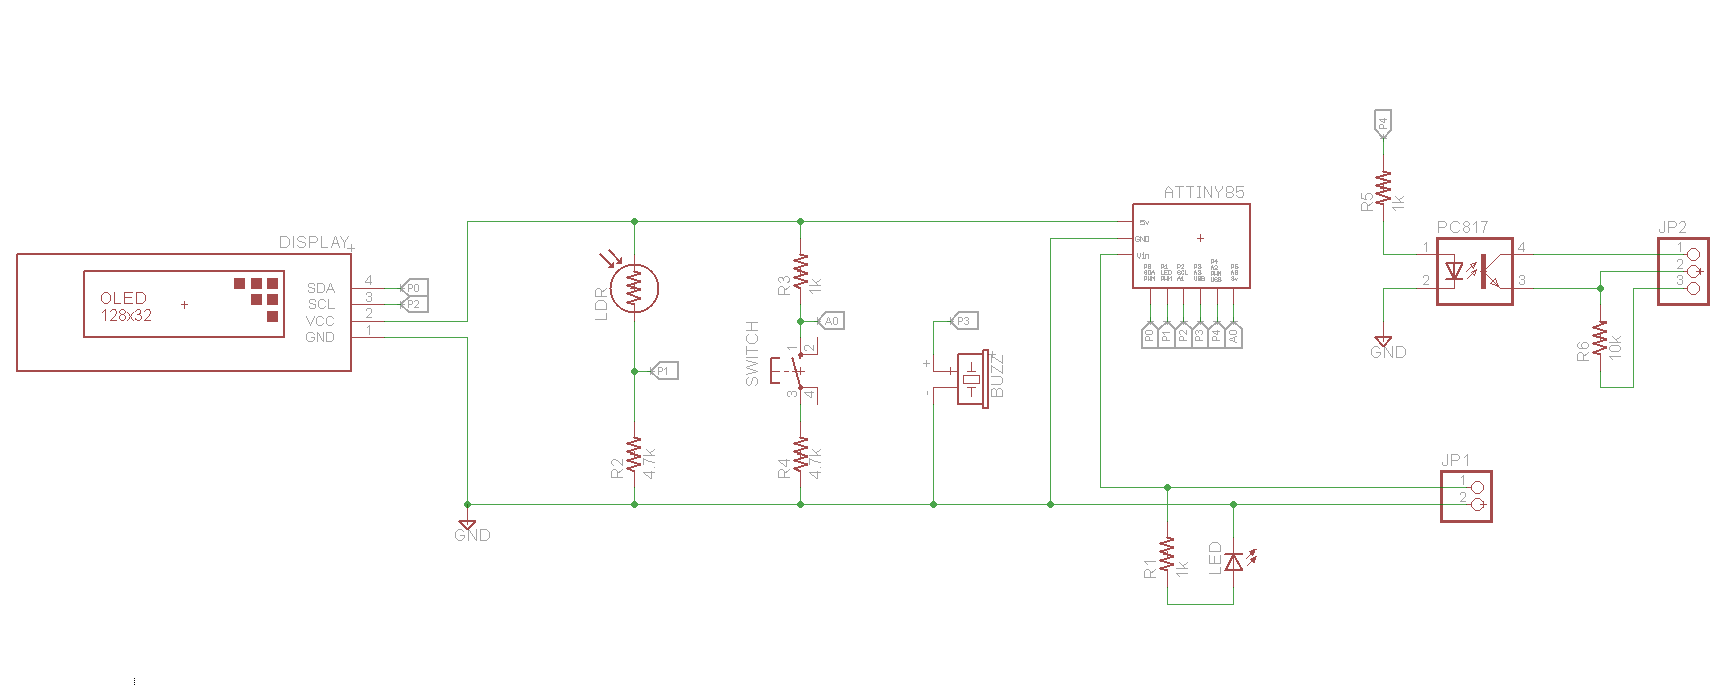 3D printer clog detector v2 schematic